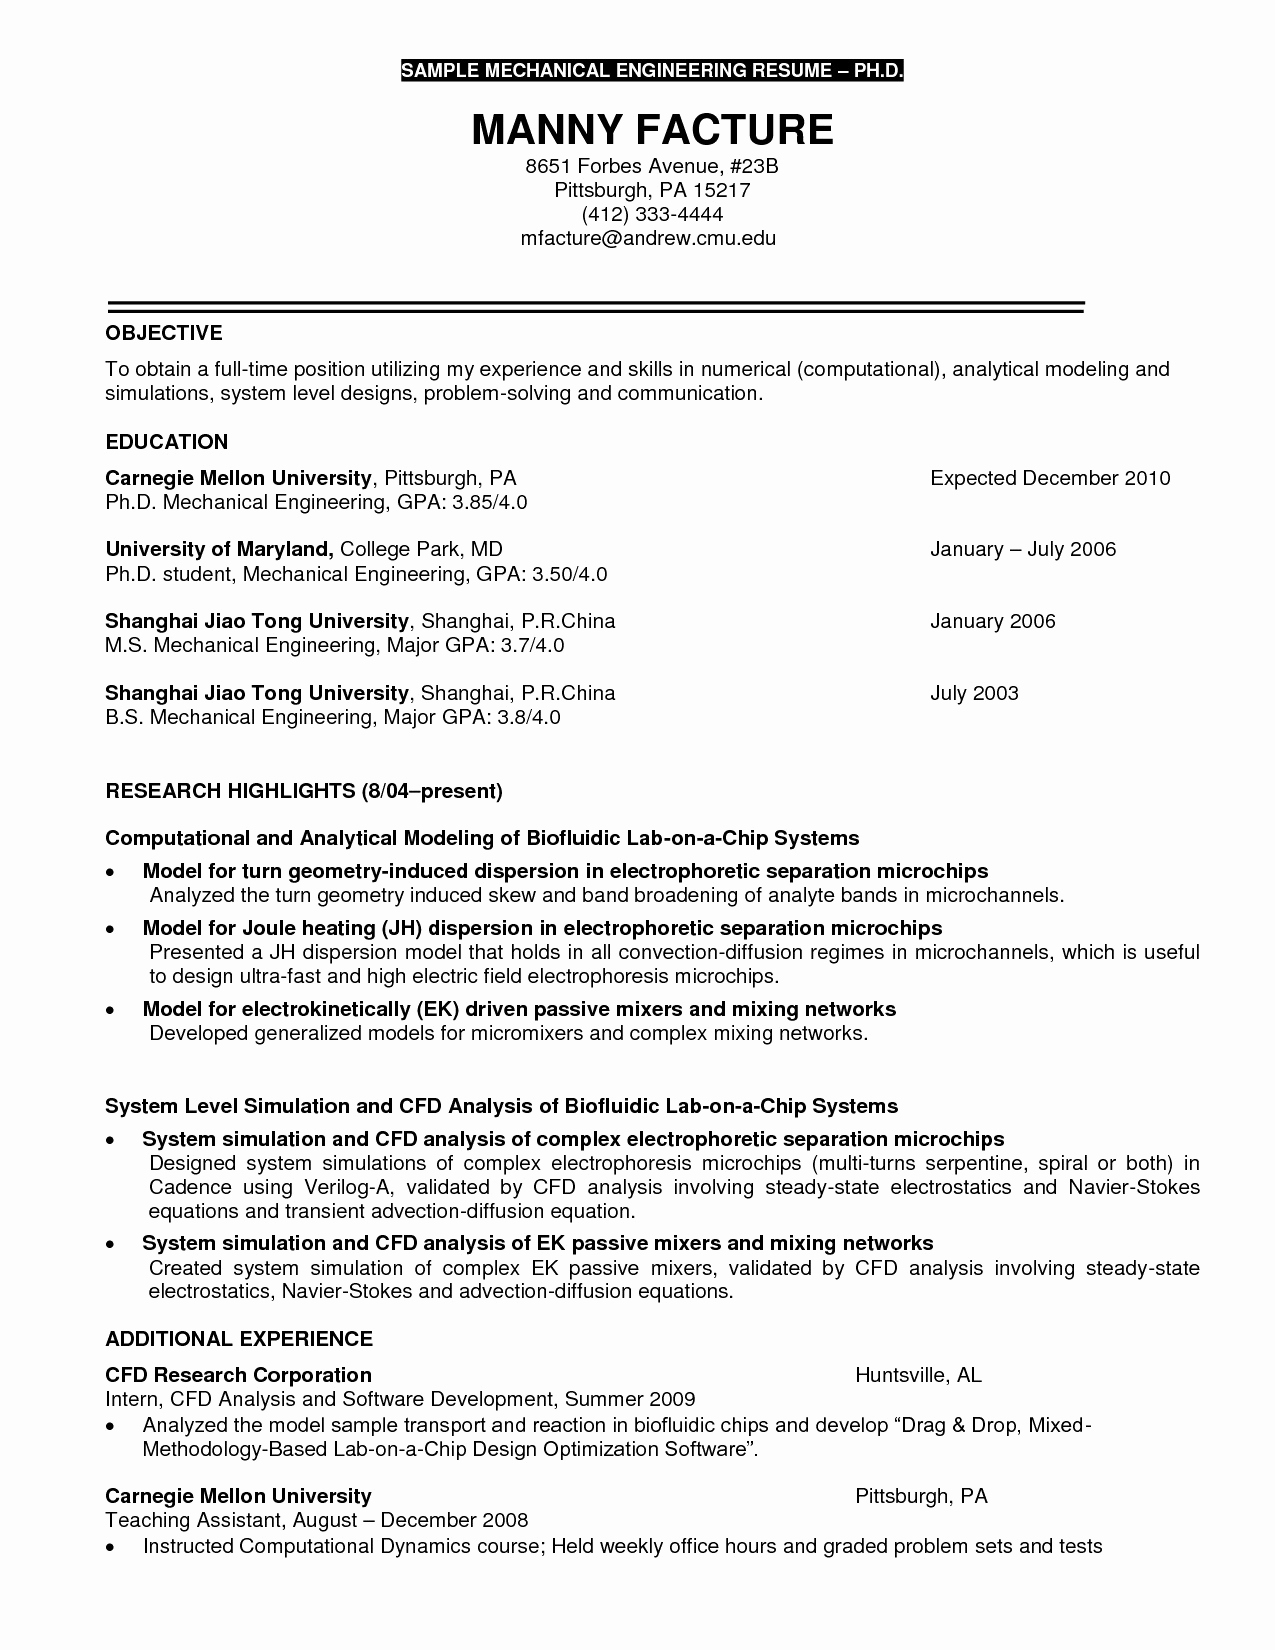 curriculum vitae for phd application